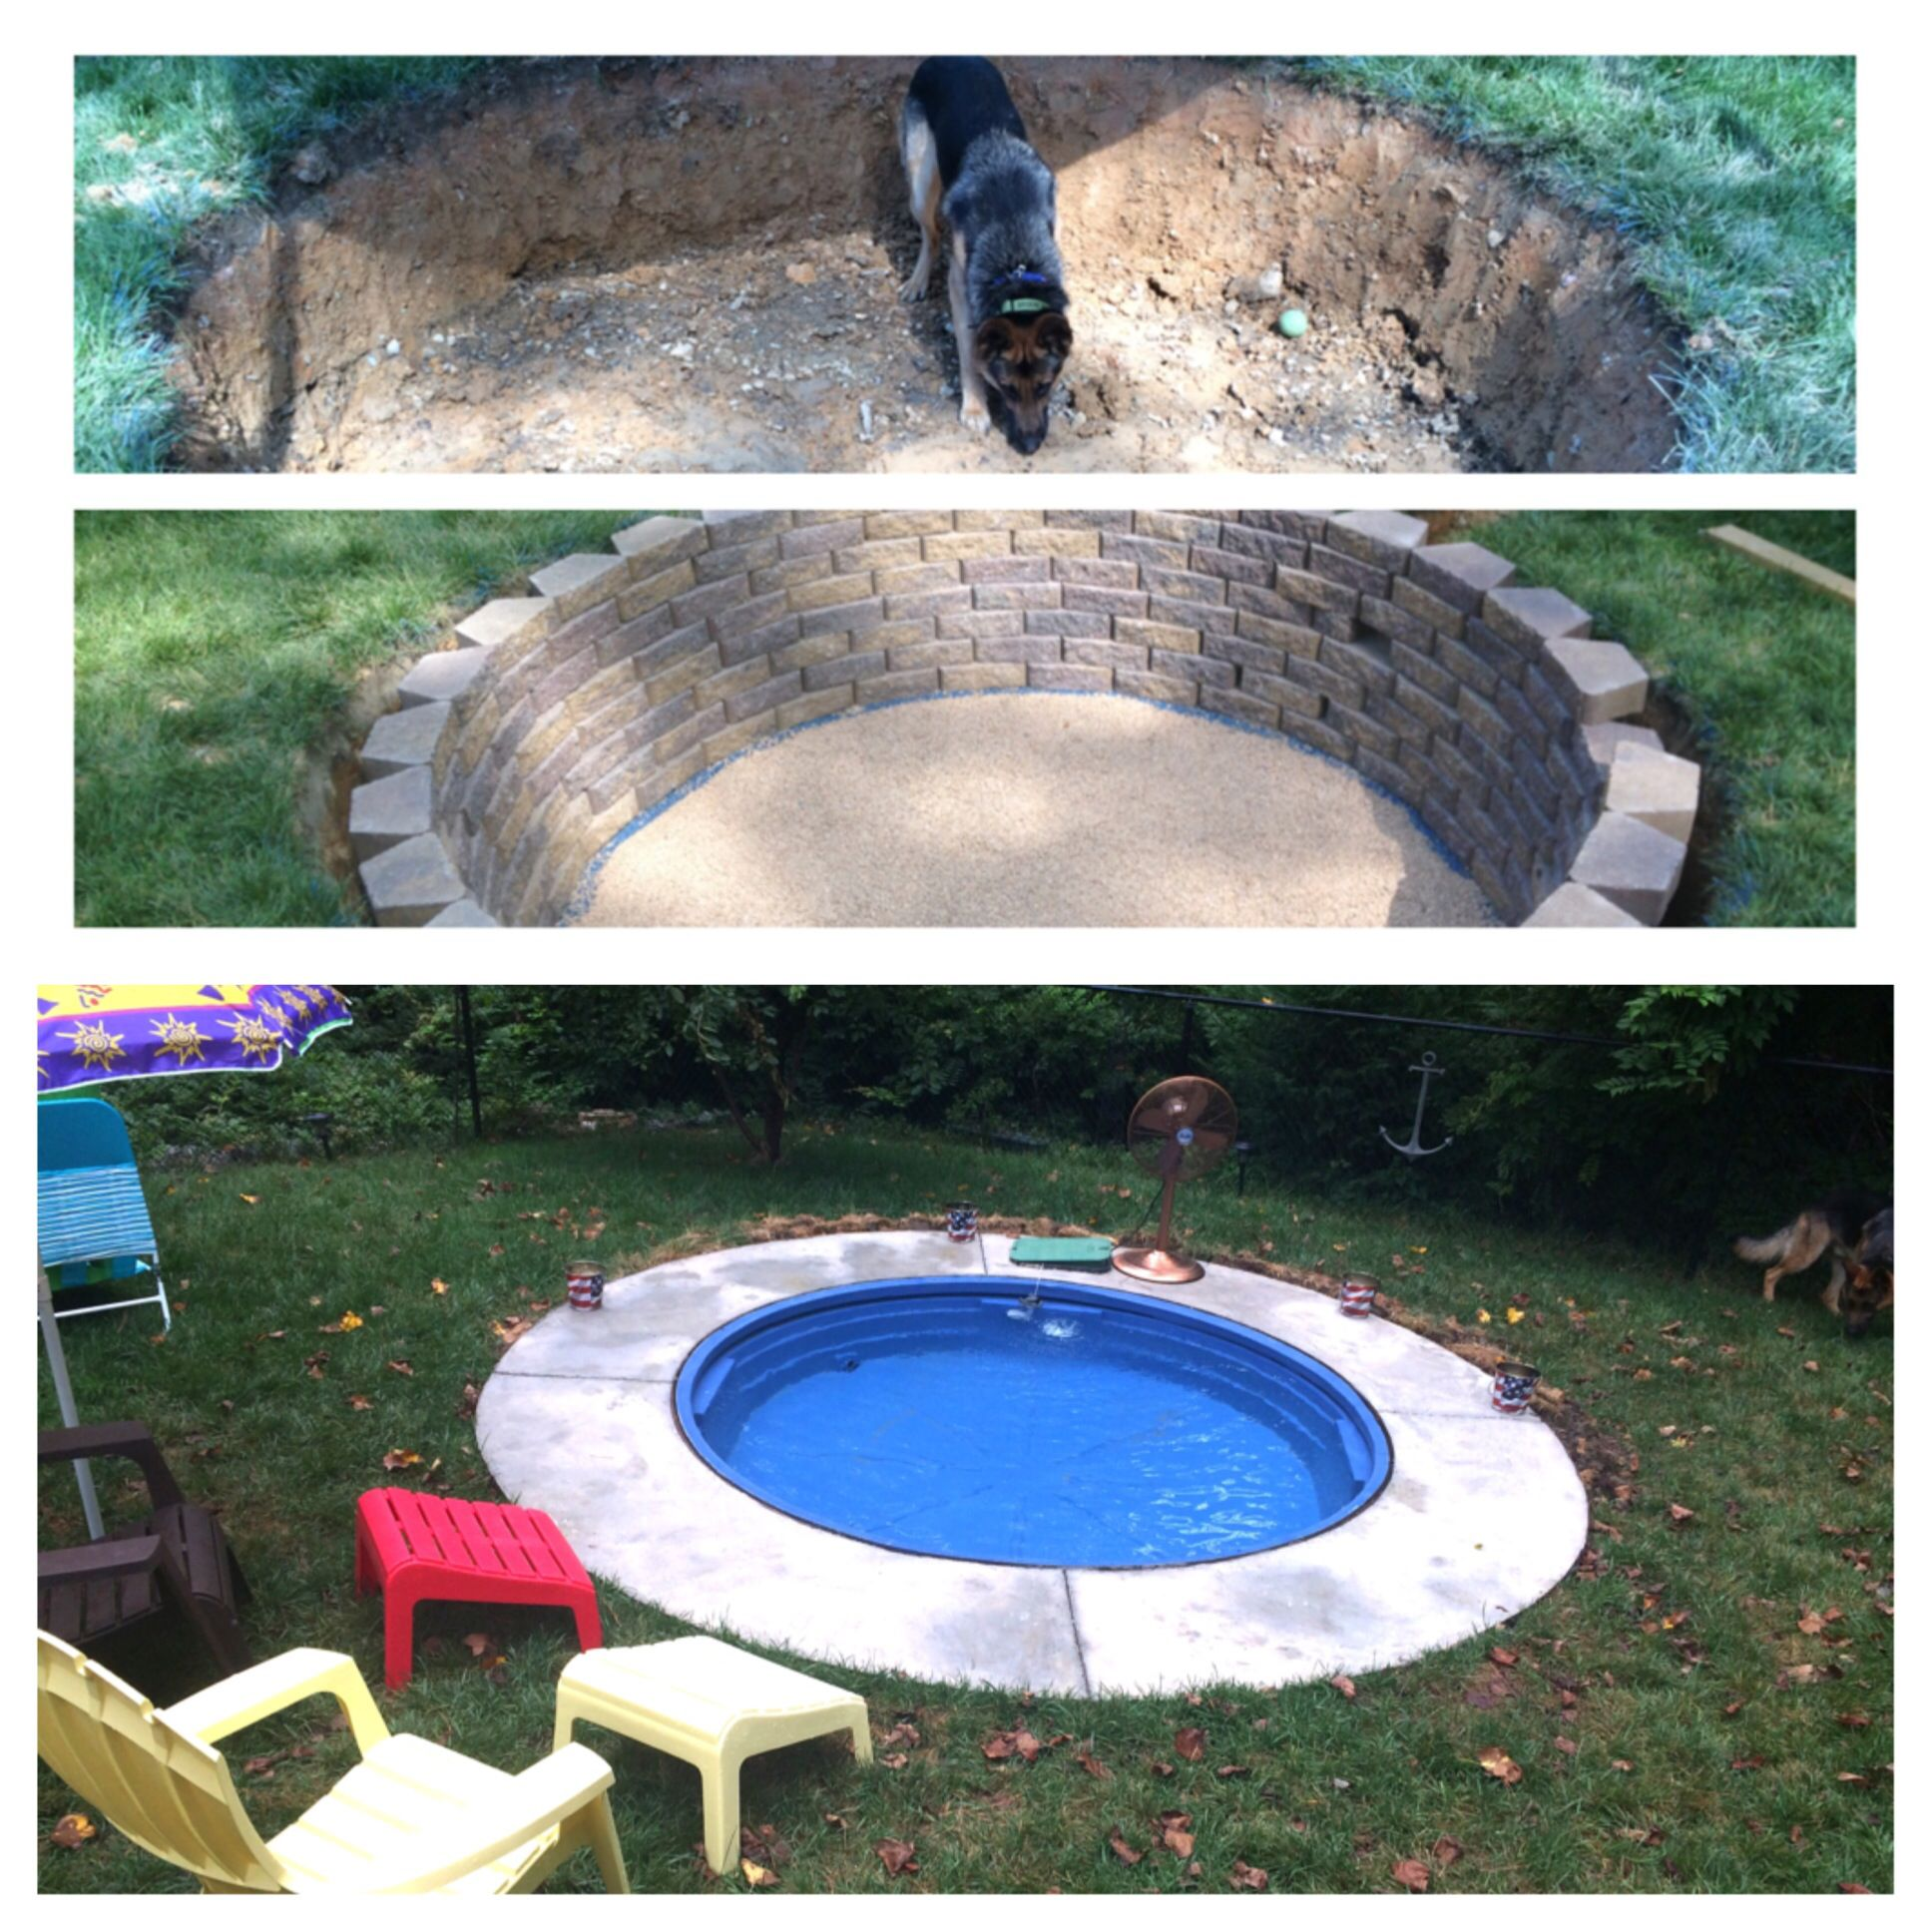 Mini pool build using a stock tank from tractor supply for Diy pond liner ideas